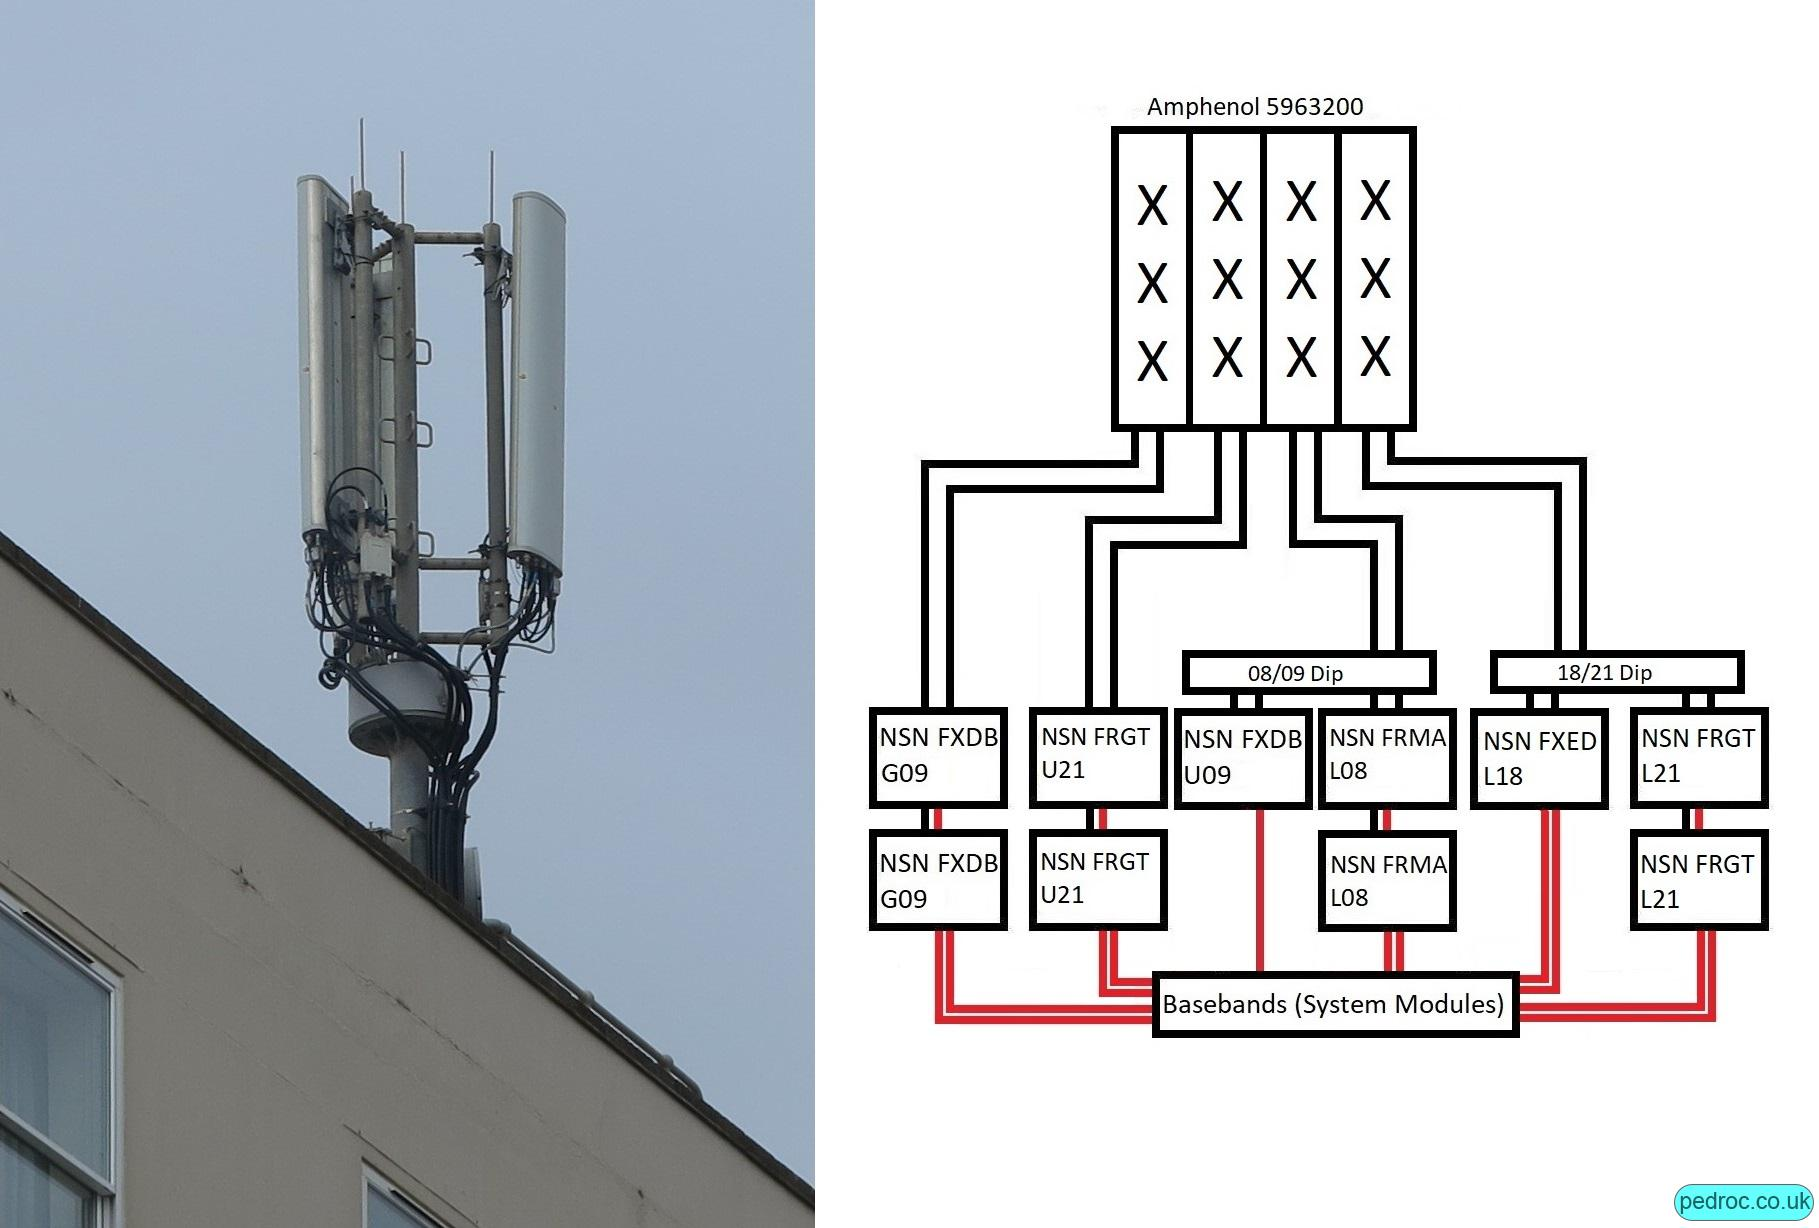 O2 Nokia Medium Capacity site with Nokia FRGT, FXDB, FXED. FRMA, Amphenol antennas.